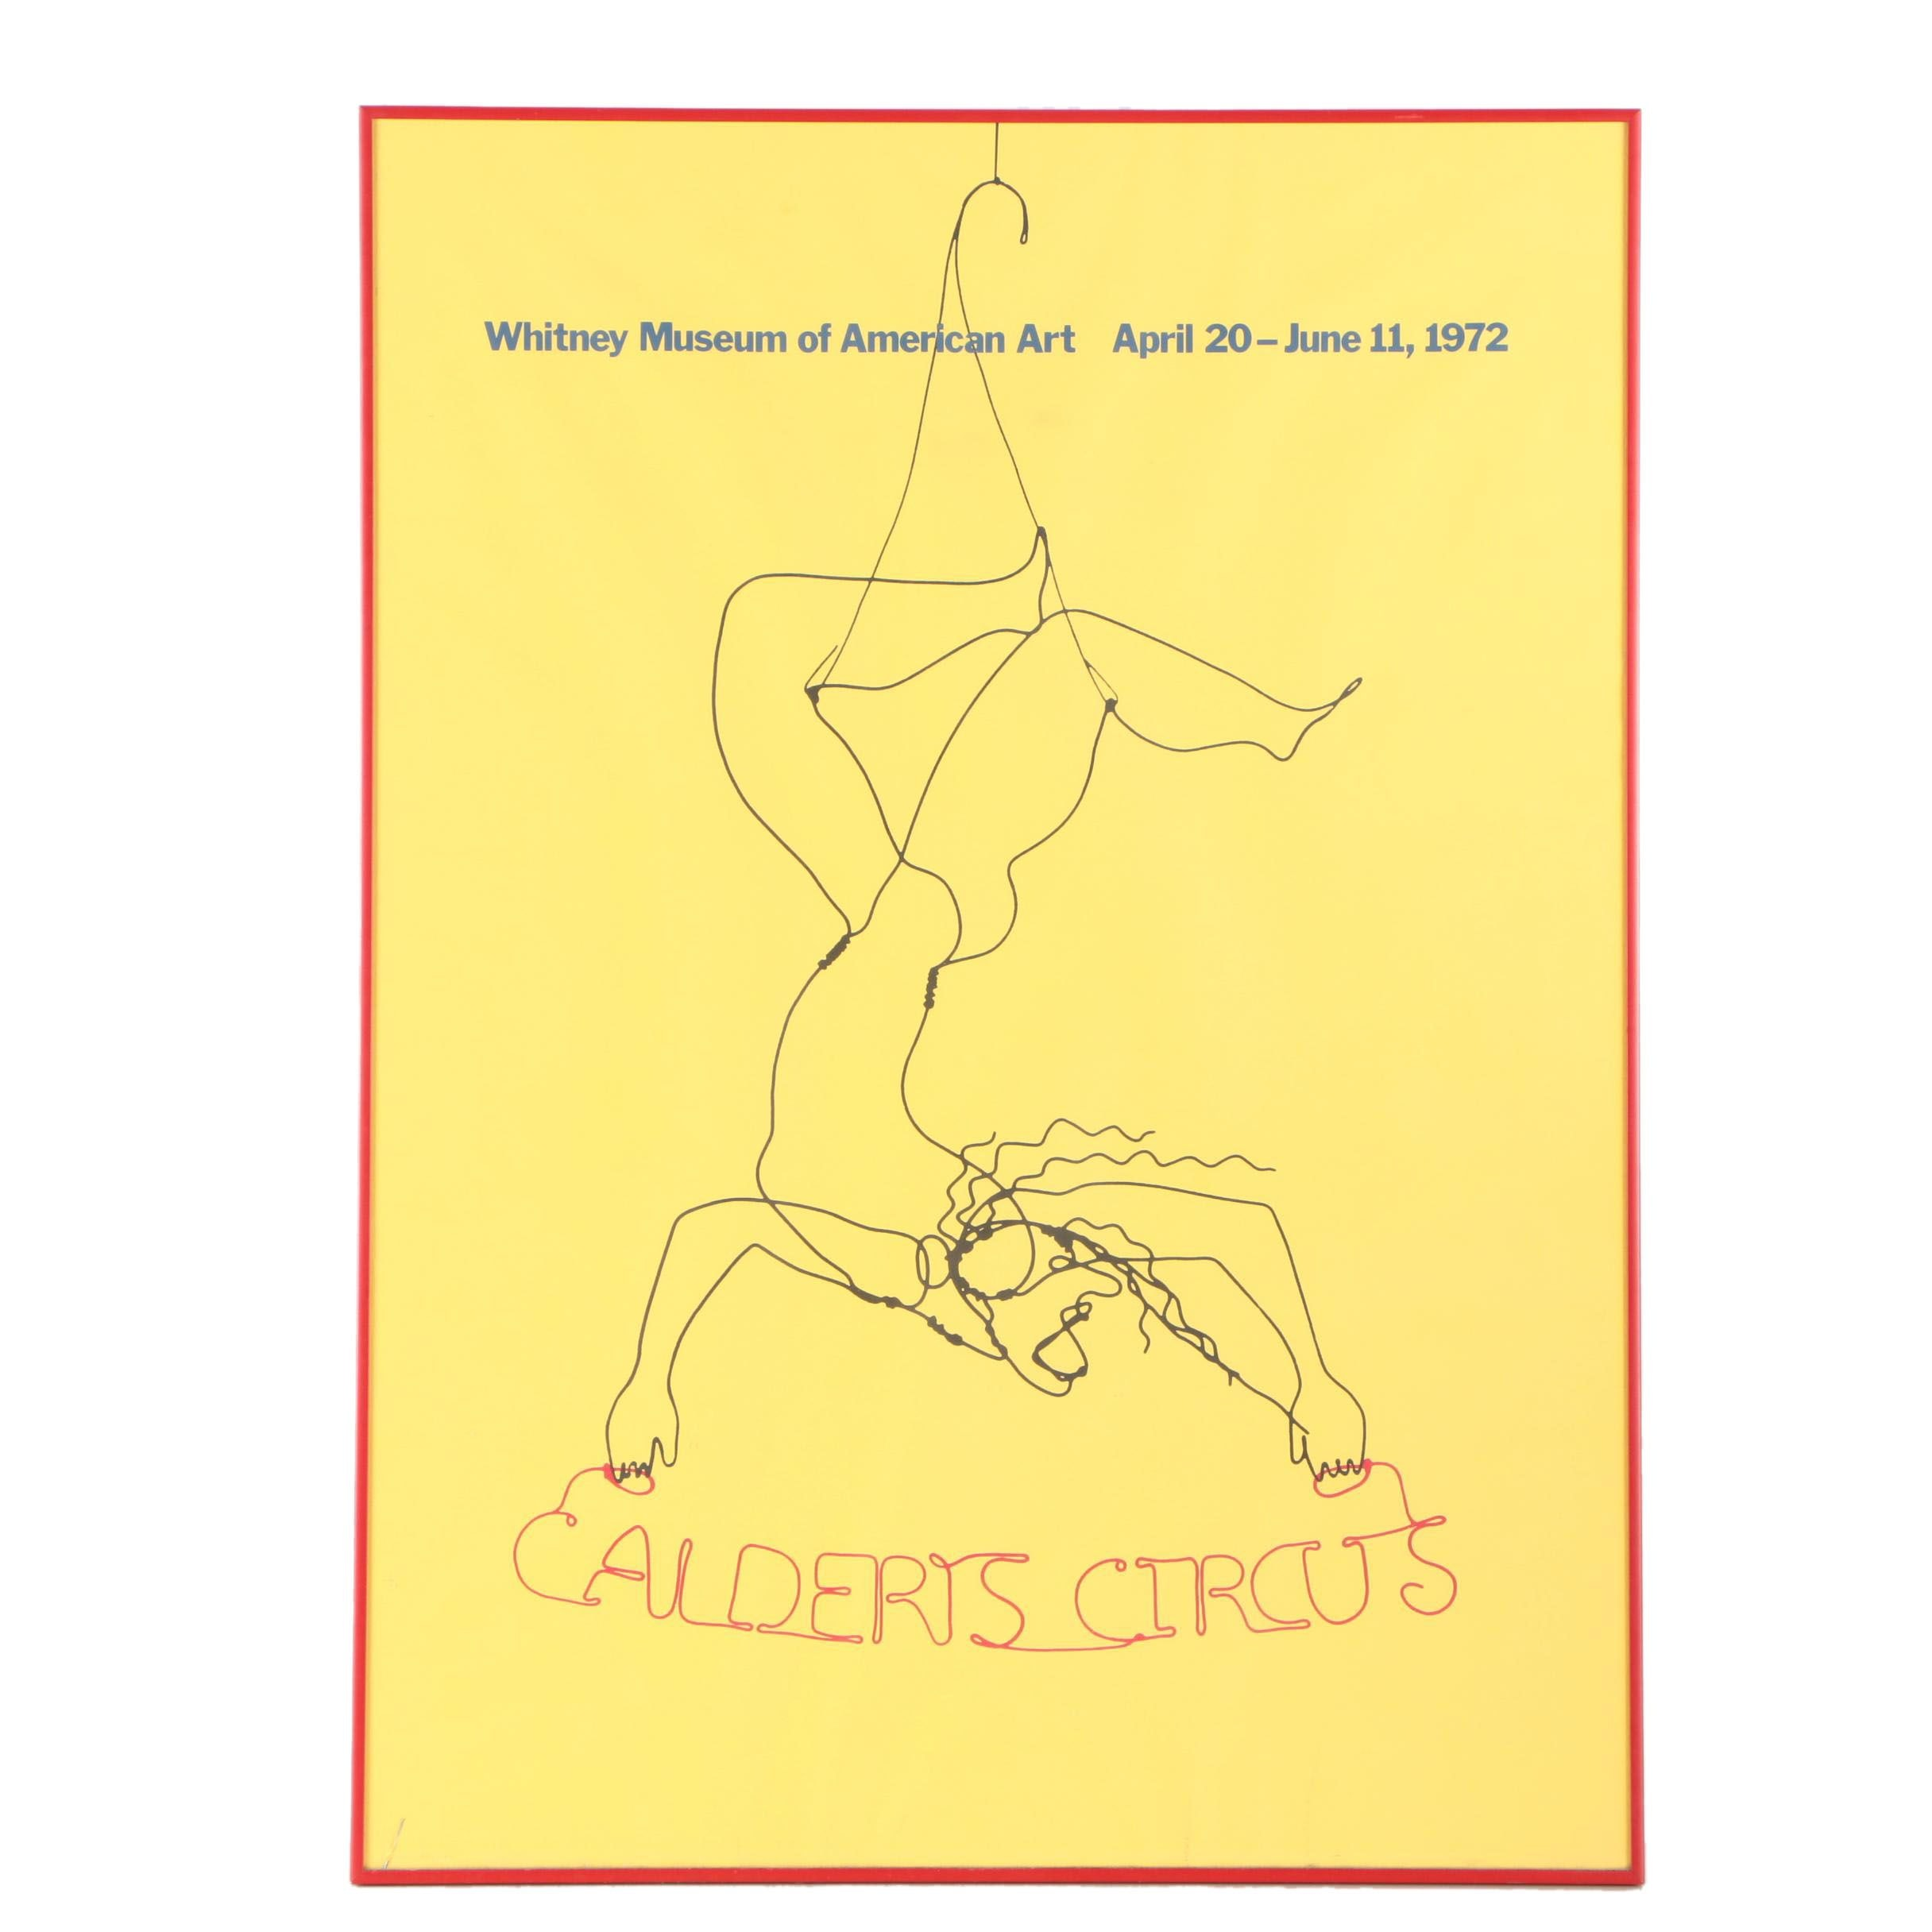 "1972 Whitney Museum of Art ""Calder's Circus"" Poster"